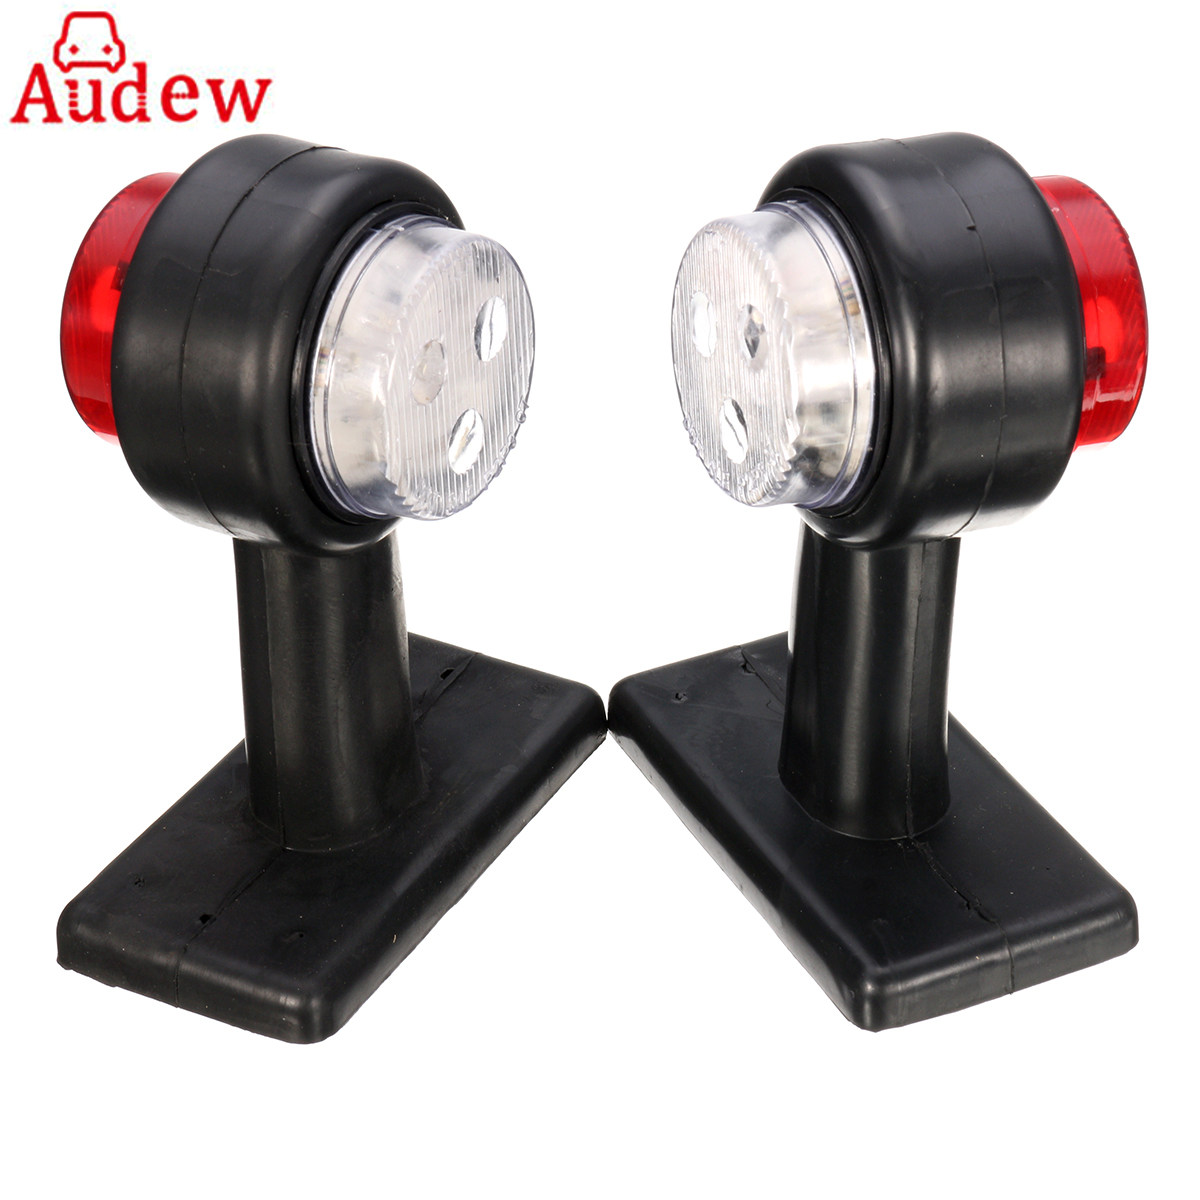 2Pcs 12V/24V Truck Trailer Caravan LED Double Side Marker Clearance Light Lamp Red& White cyan soil bay truck trailer side fender marker clearance light chrome bezel 3 led dc 10 30v red